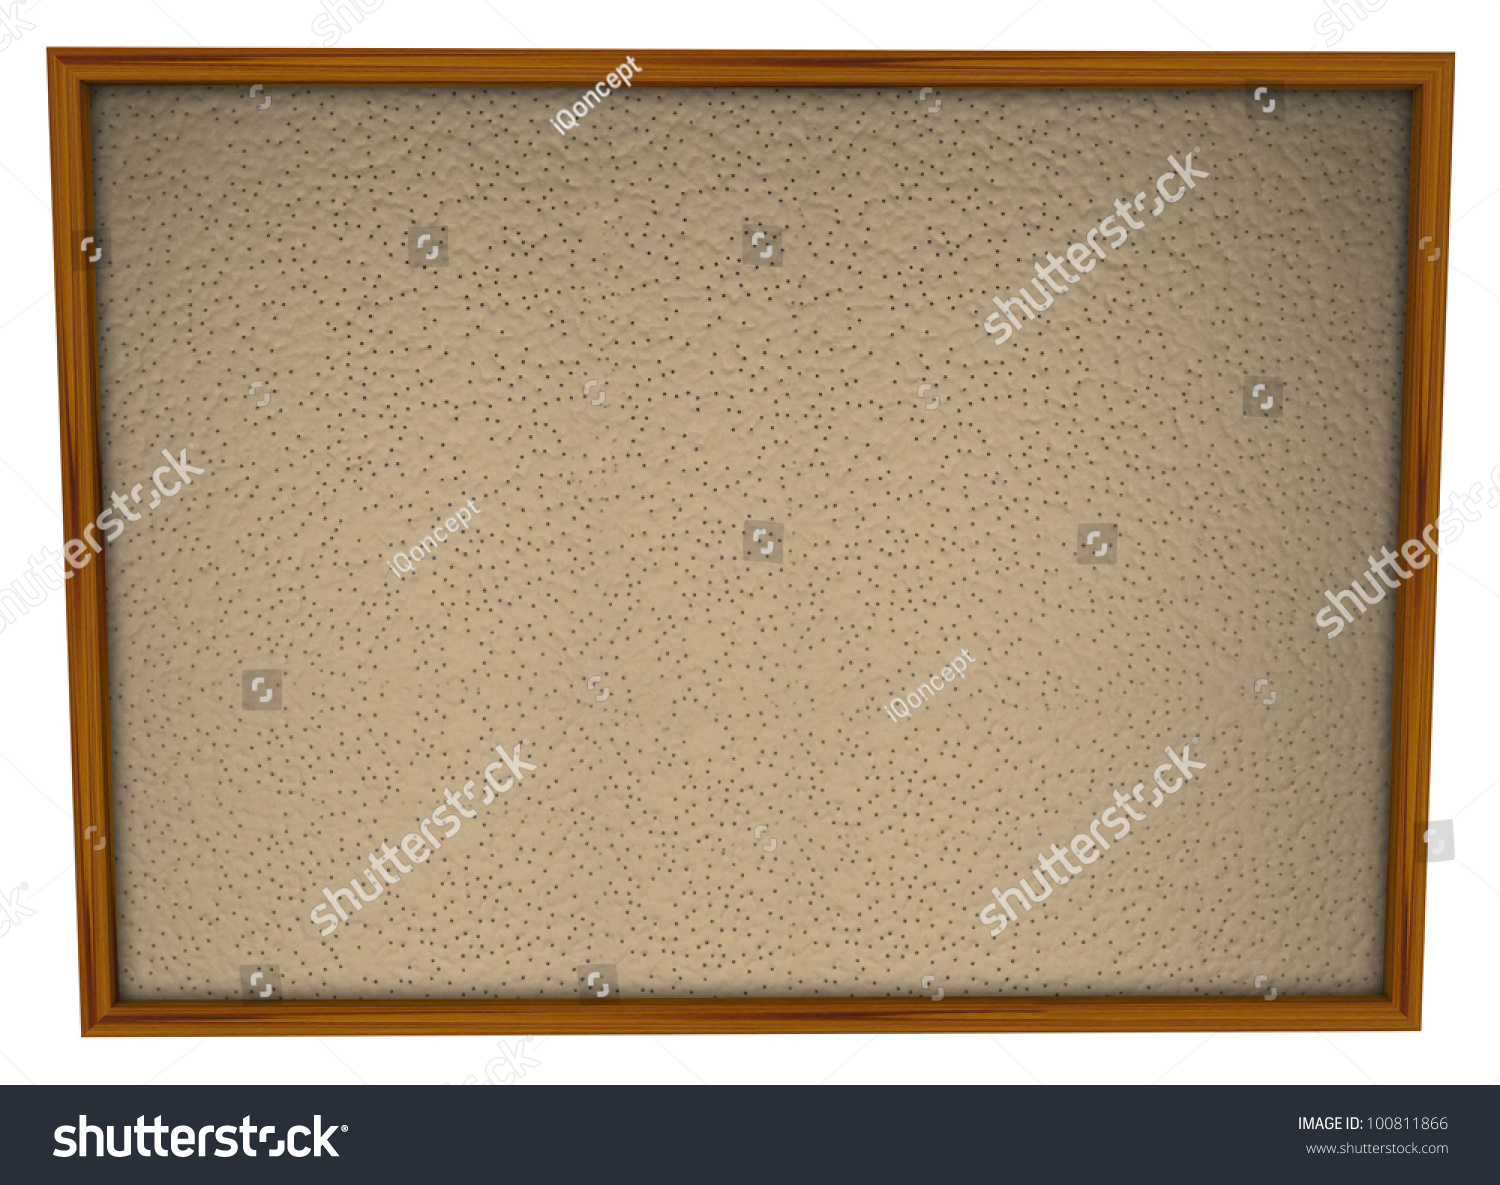 Blank bulletin board wood frame lots stock illustration 100811866 a blank bulletin board in wood frame and lots of space for you to place pictures jeuxipadfo Choice Image